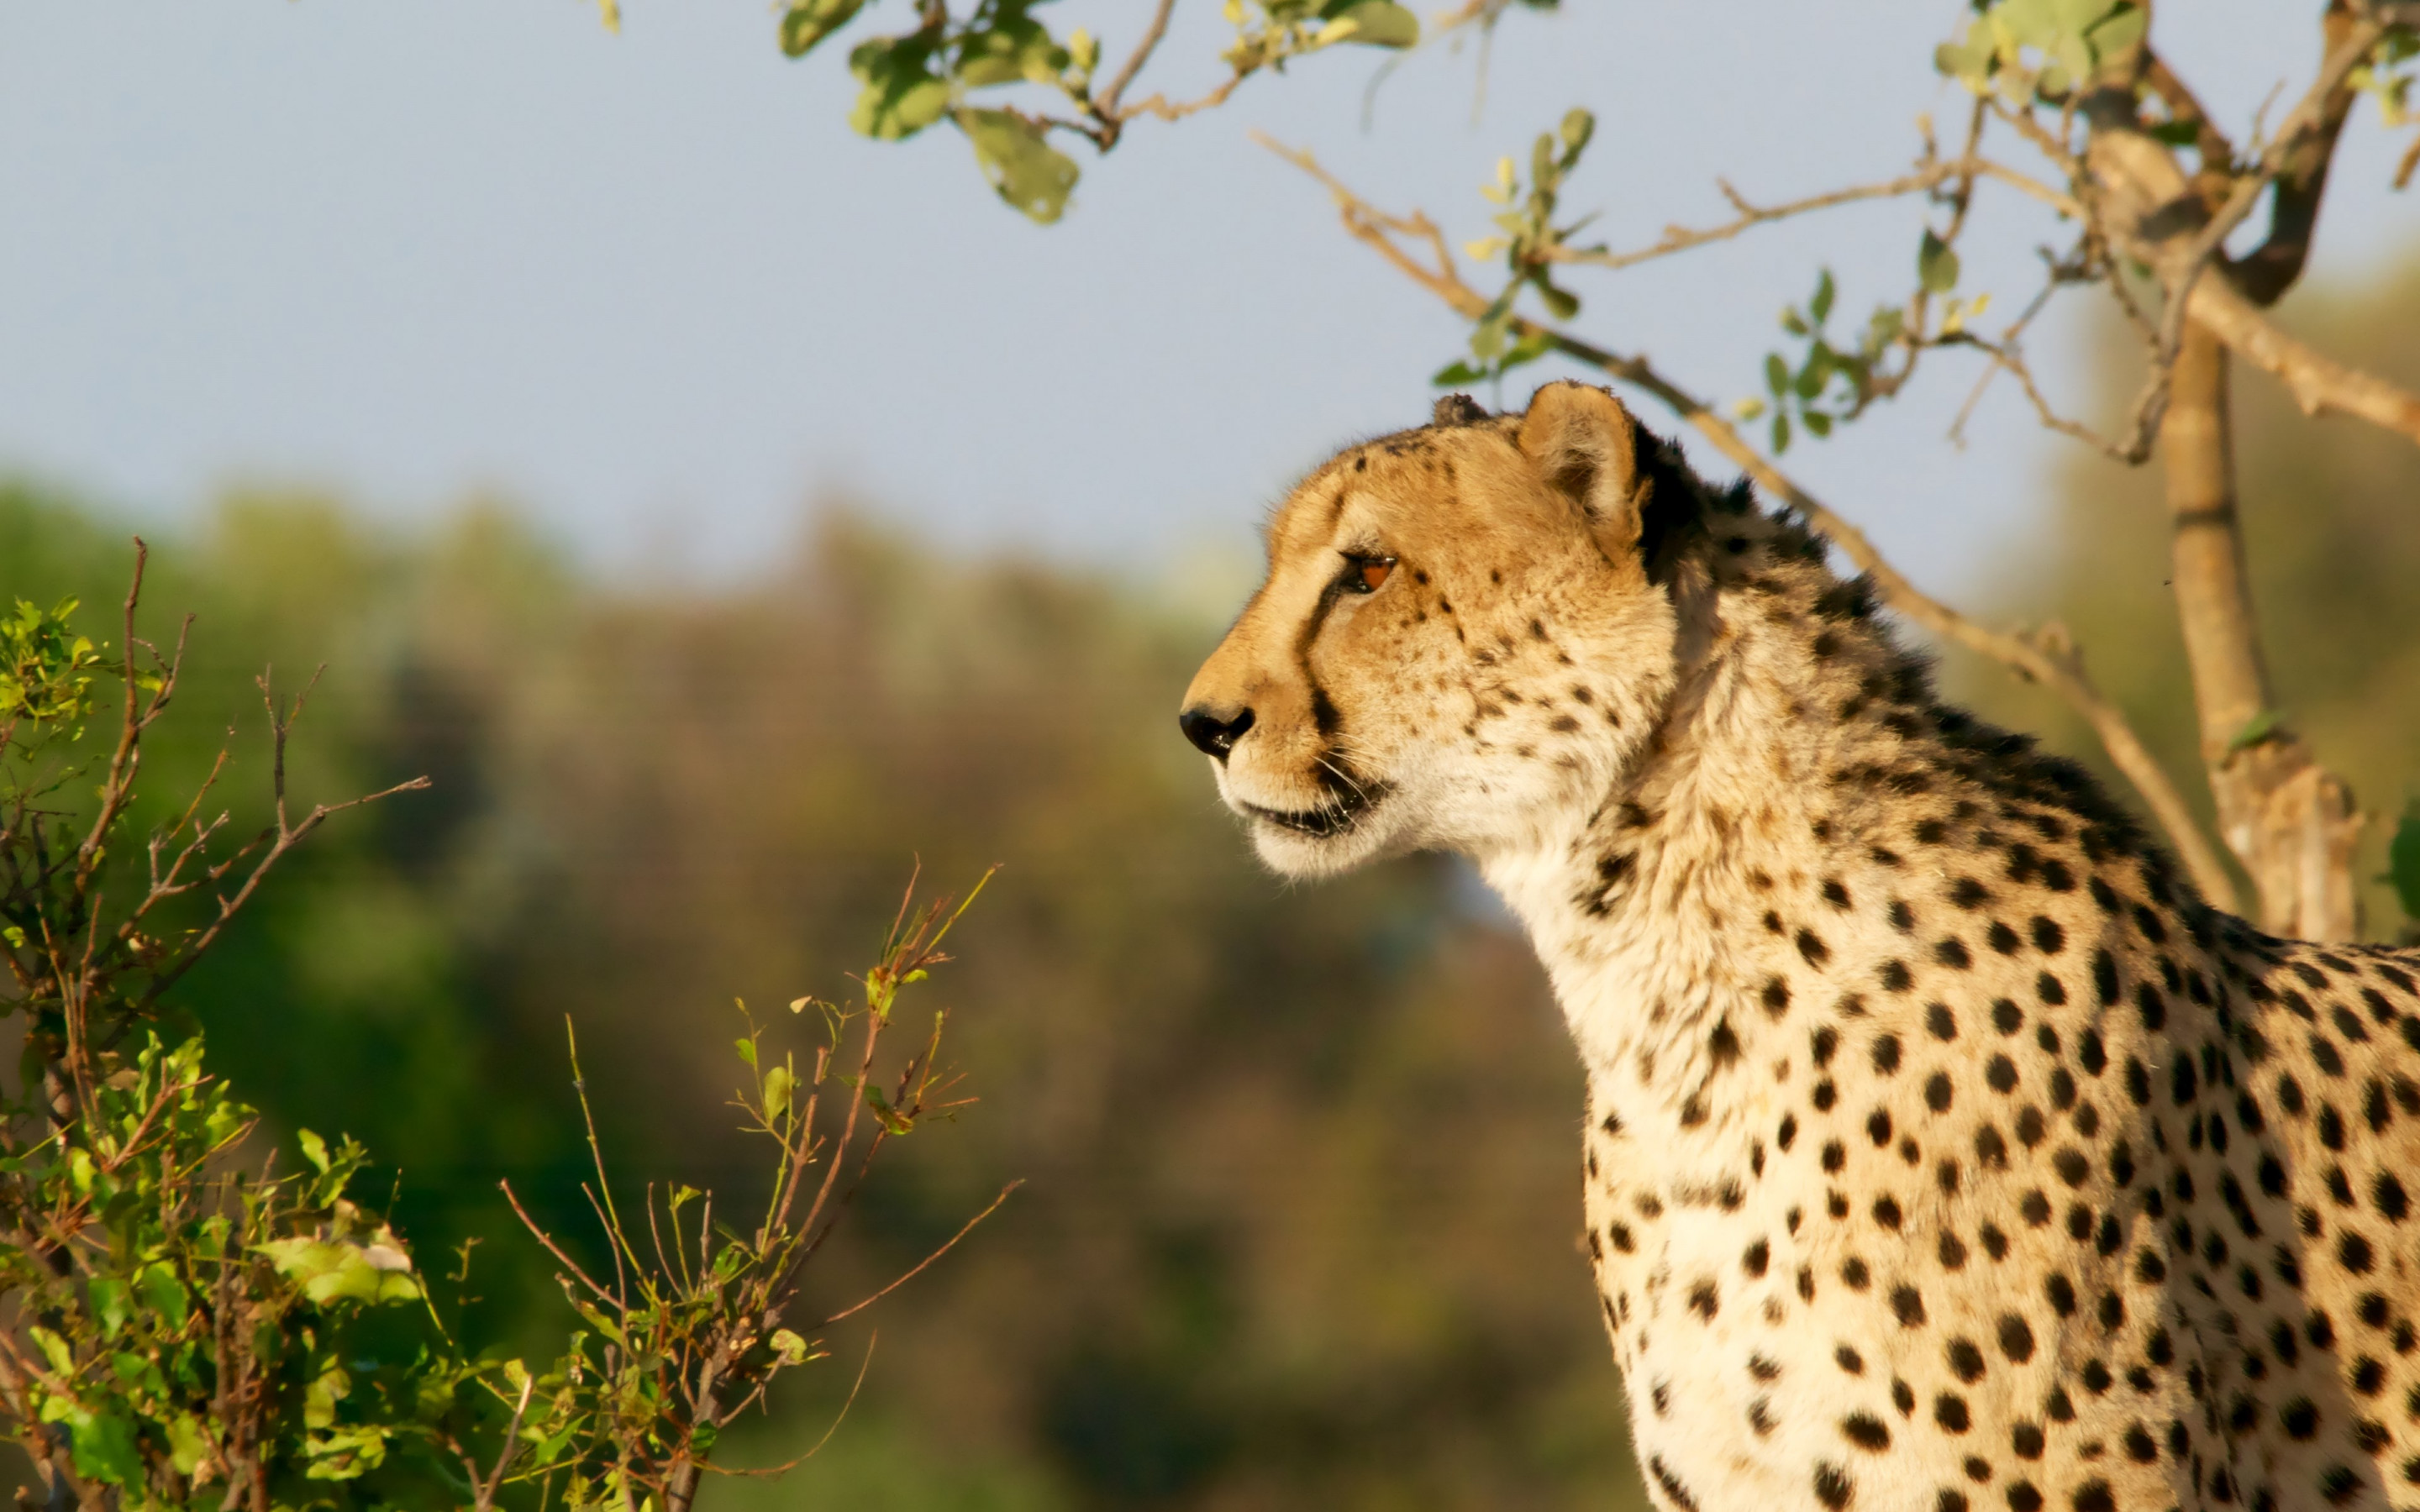 Cheetah in Ngamiland East, Botswana | 2880x1800 wallpaper